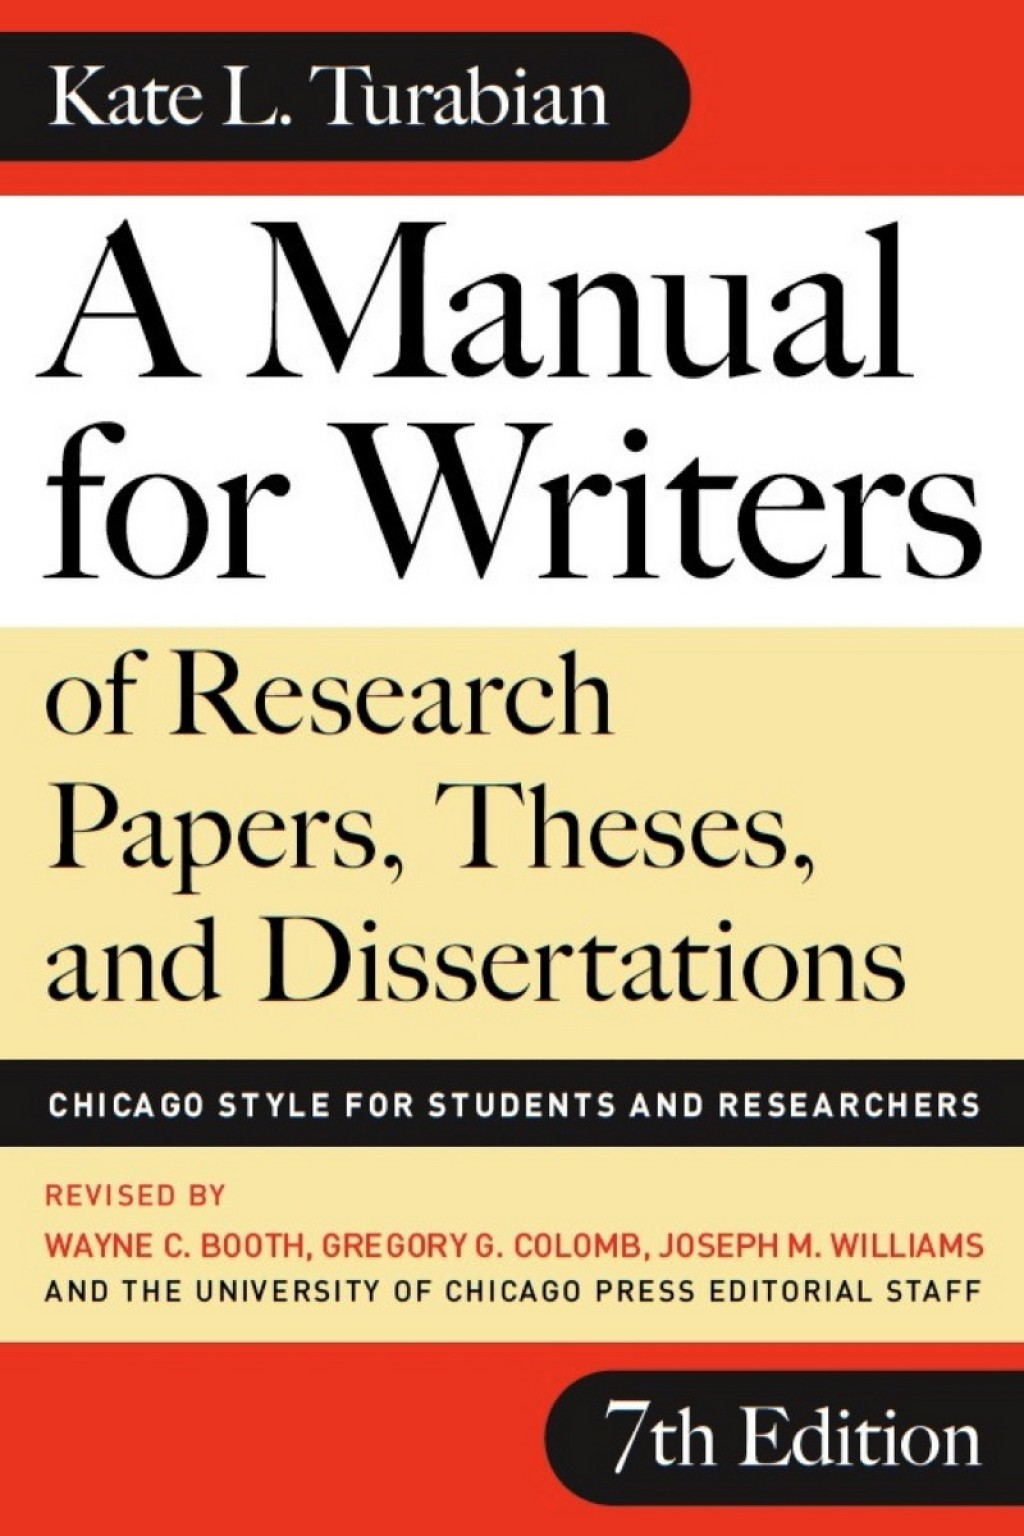 008 Manual For Writers Of Researchs Theses And Dissertations Frontcover Magnificent Research Papers A 8th Ed Pdf Large